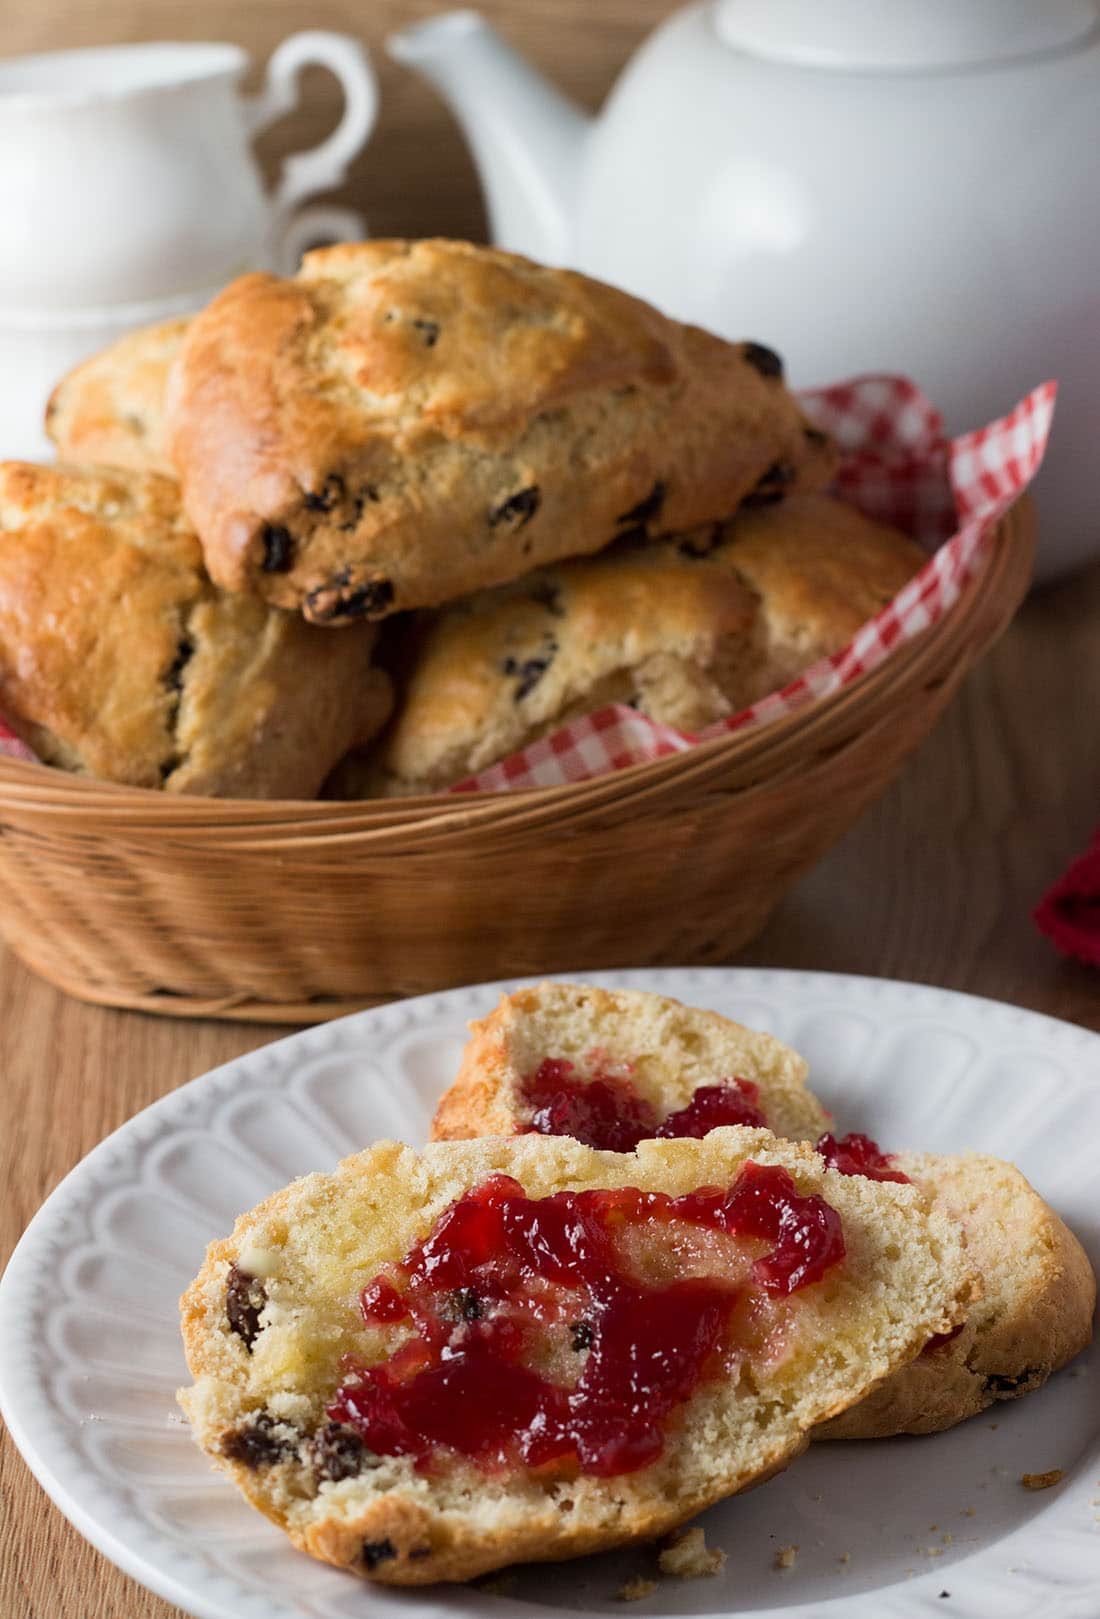 A raisin scone halved with butter and jam, with more raisin scones in the background.